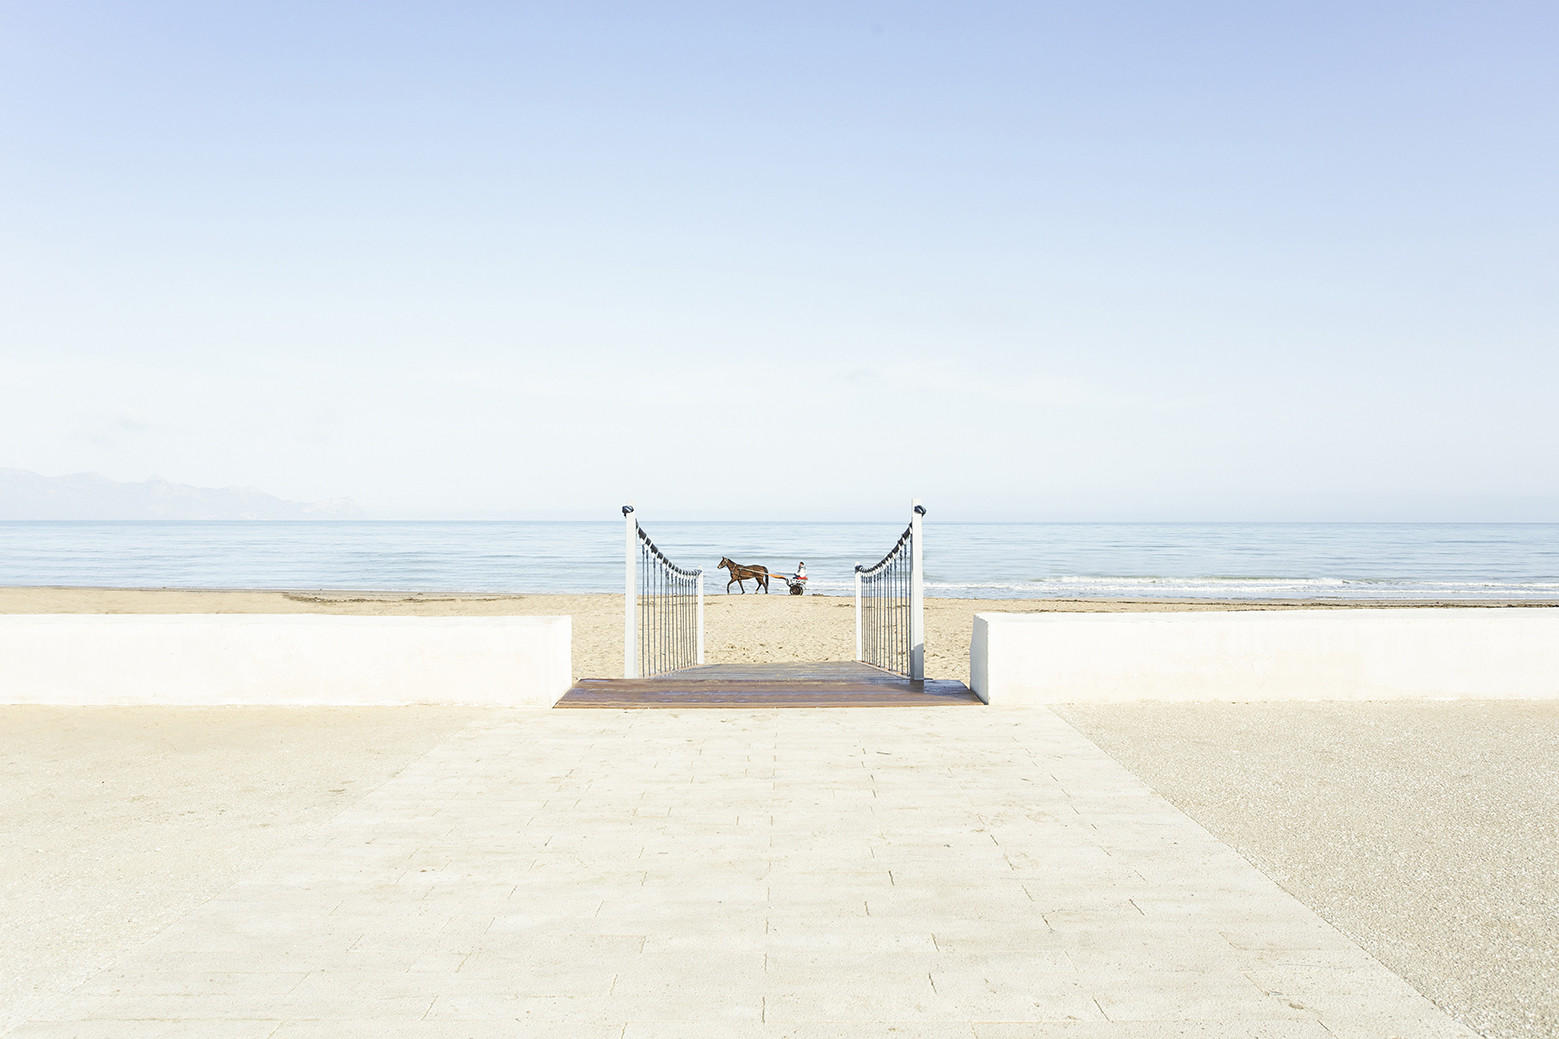 Balestrate Seafront / AM3 Architetti Associati + Studio Cangemi, © Mauro Filippi